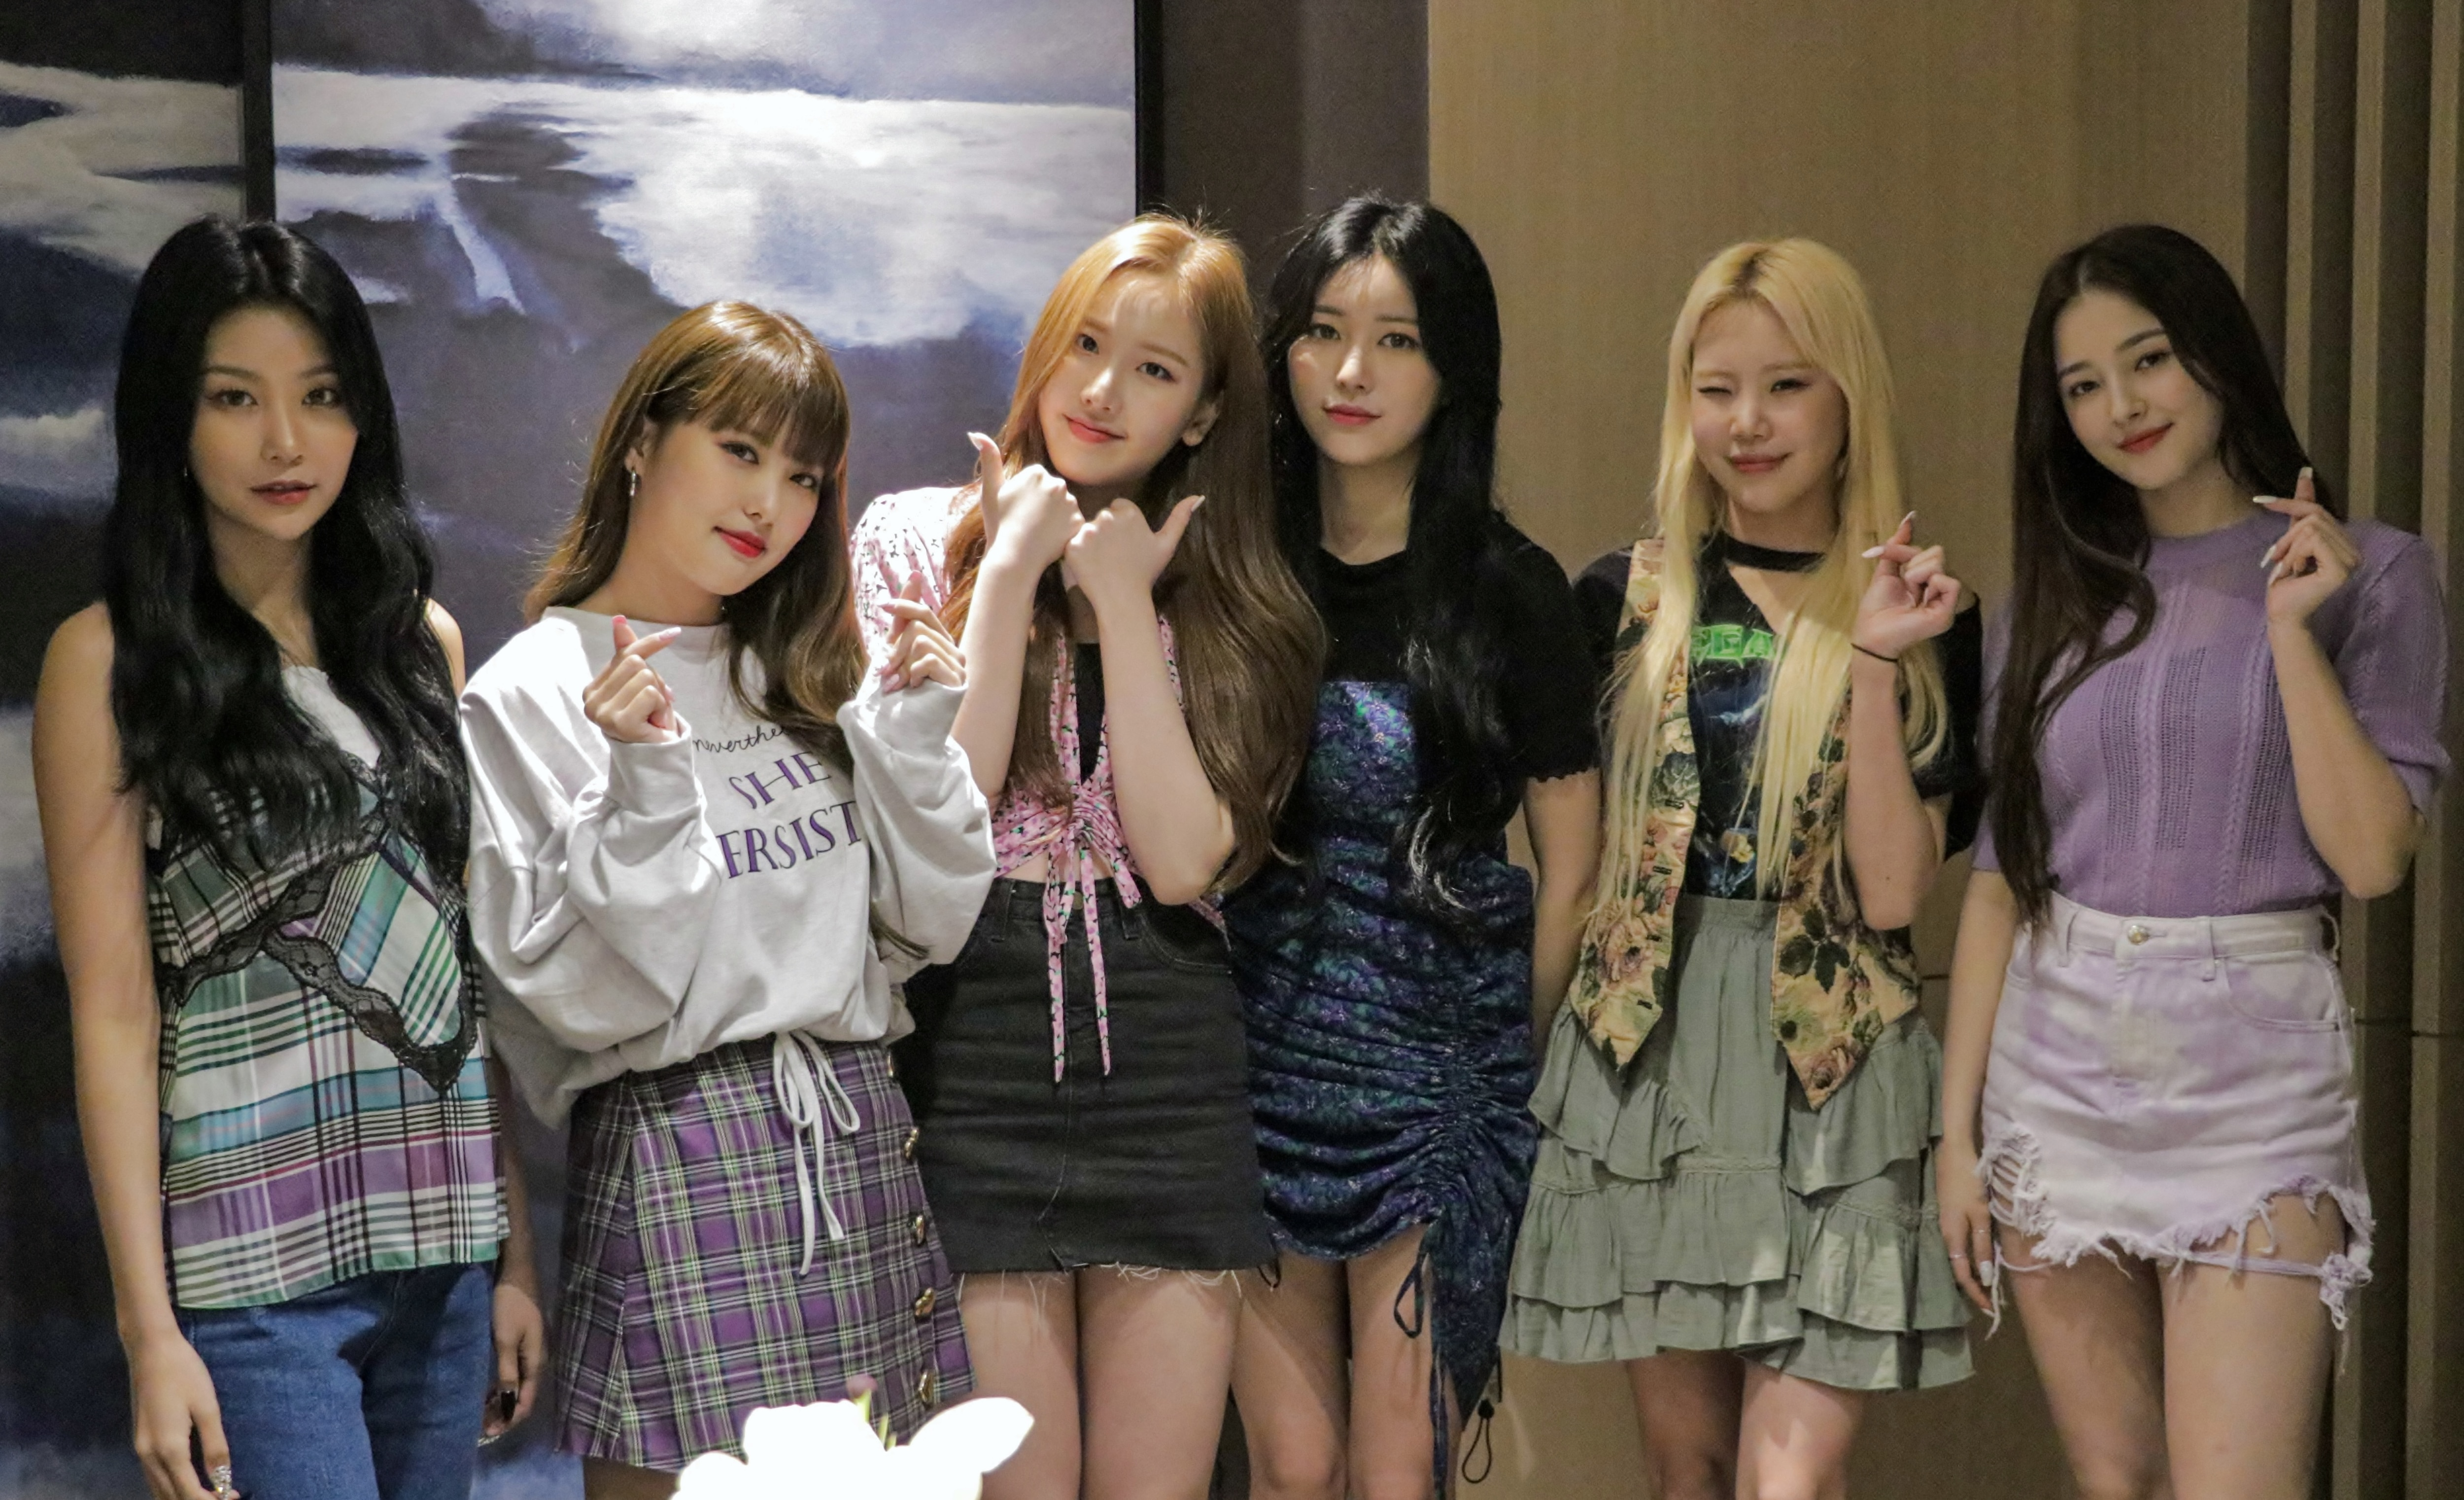 K-pop group Momoland kicks off comeback with appearances in ABS-CBN shows and Christmas special